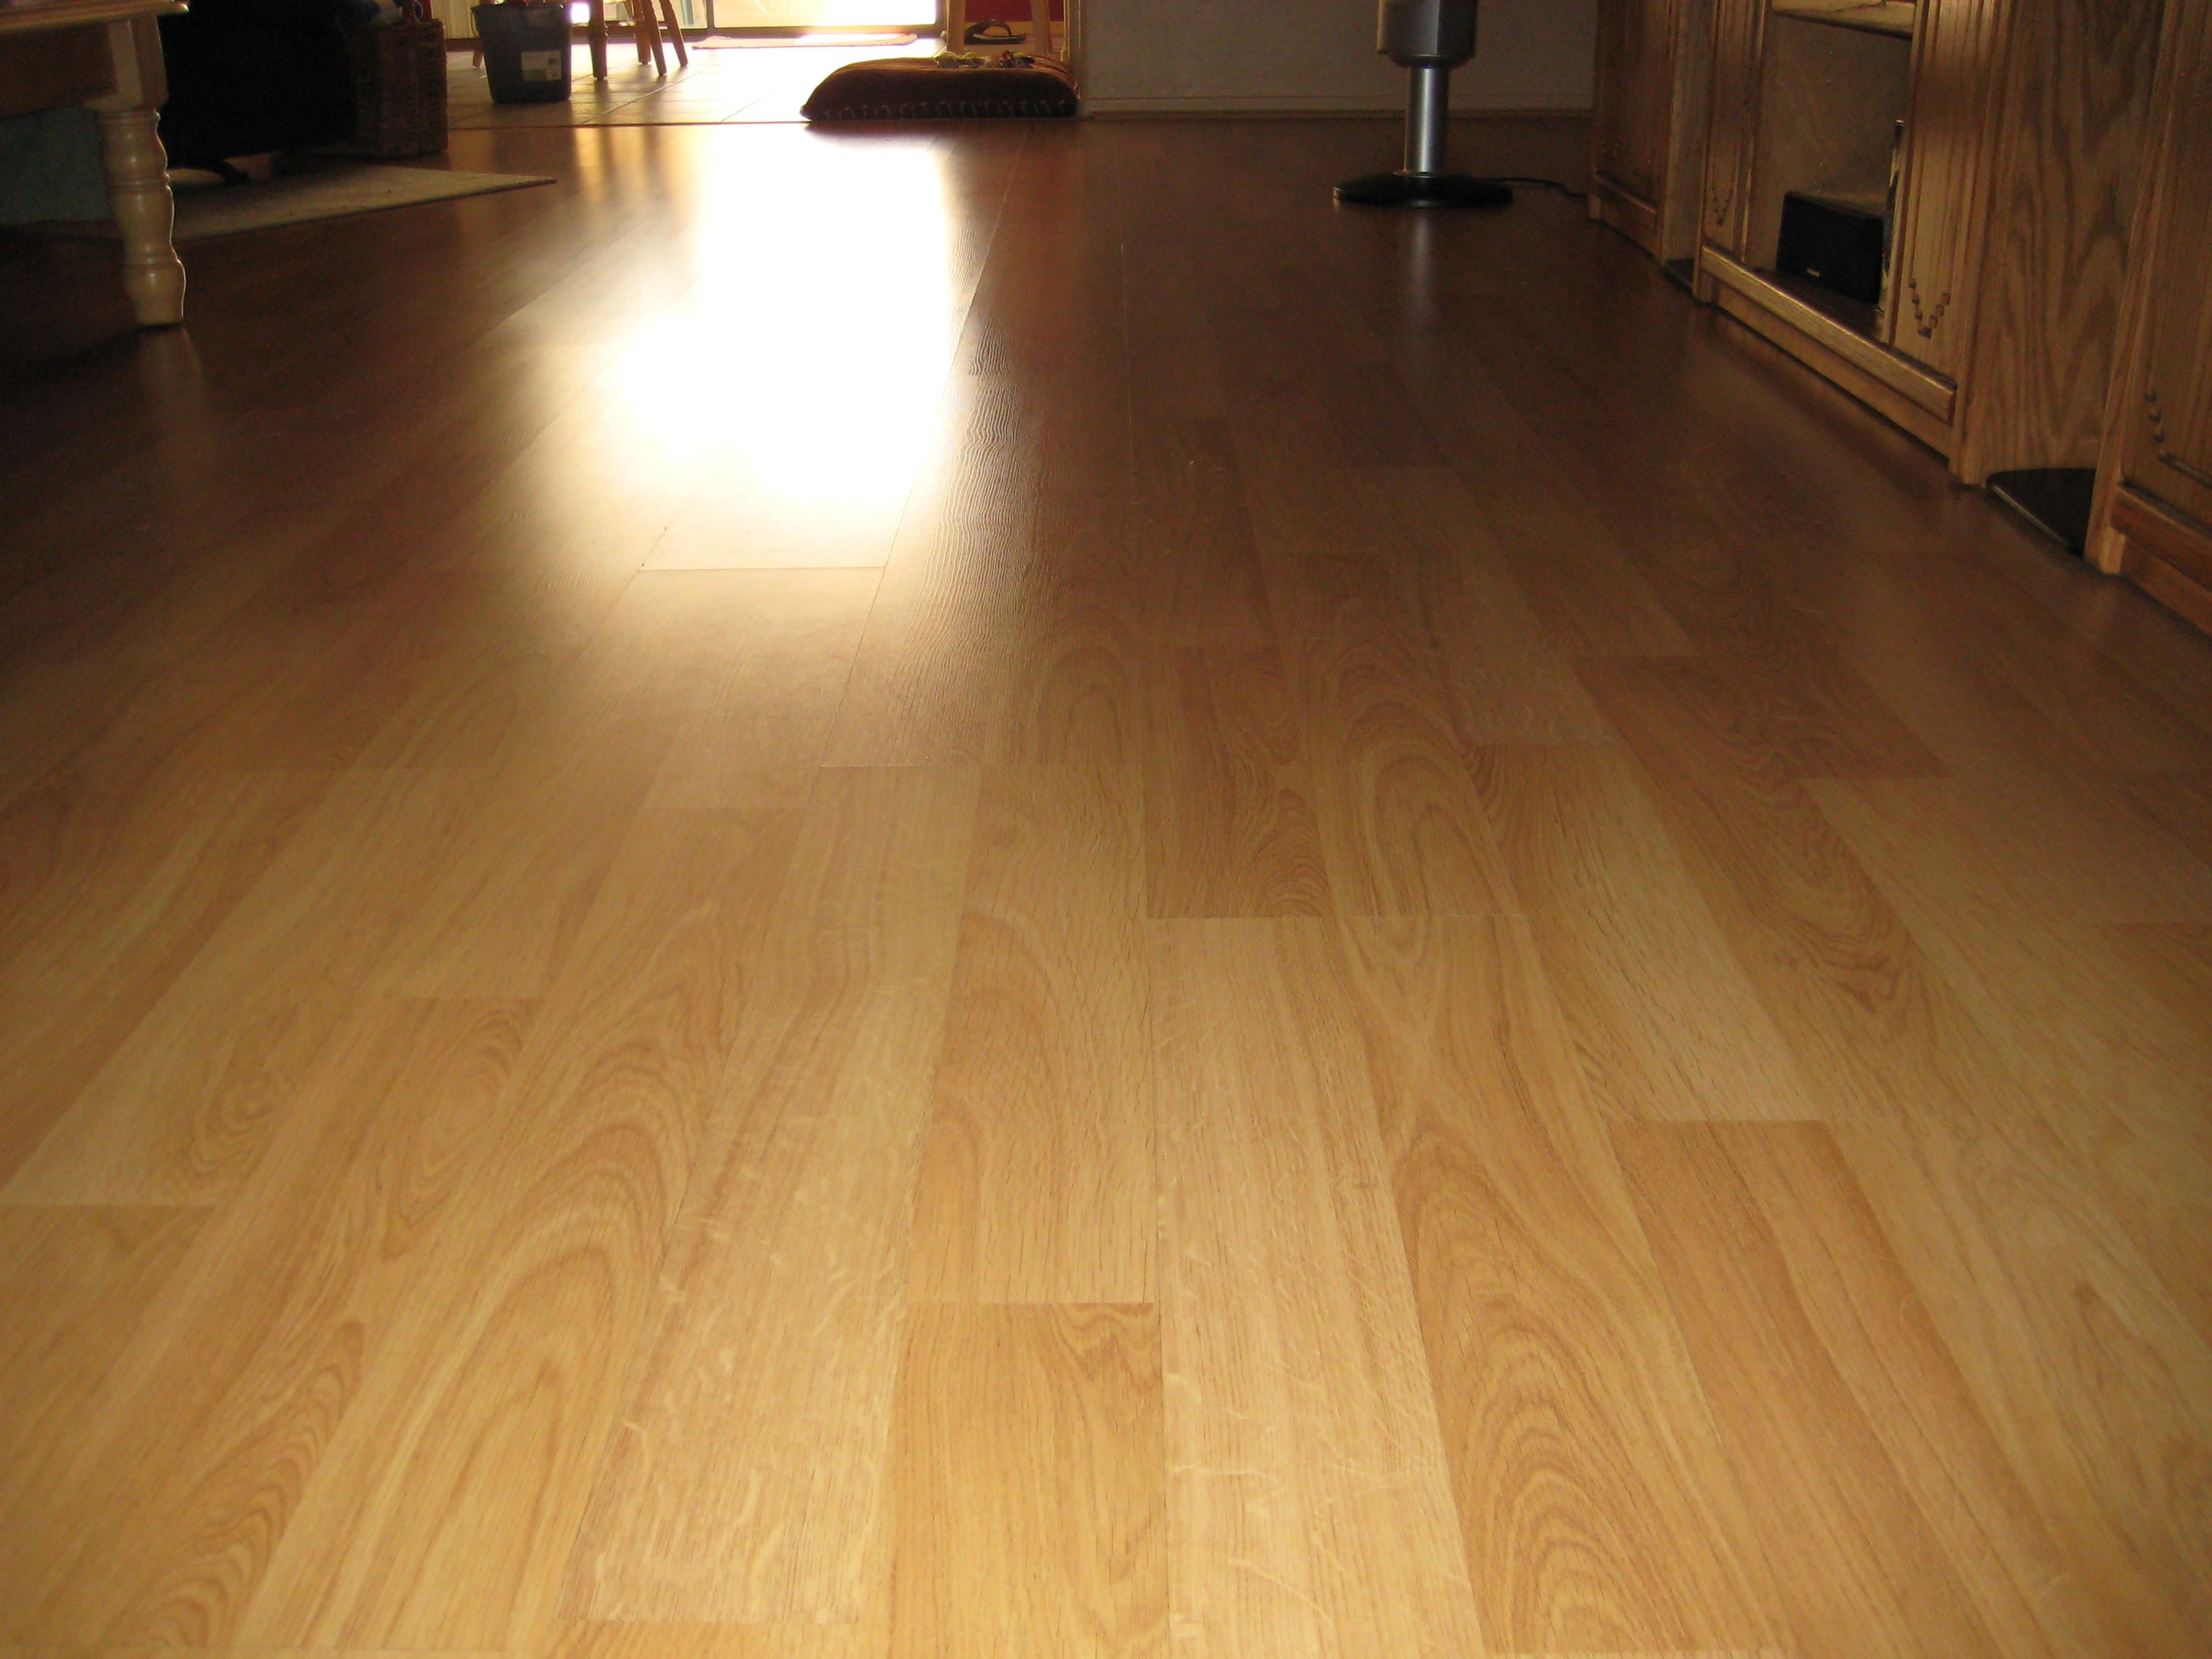 how floor film to sparkling floors wood mobile clean a swiffer laminate cleaning without get leaving home